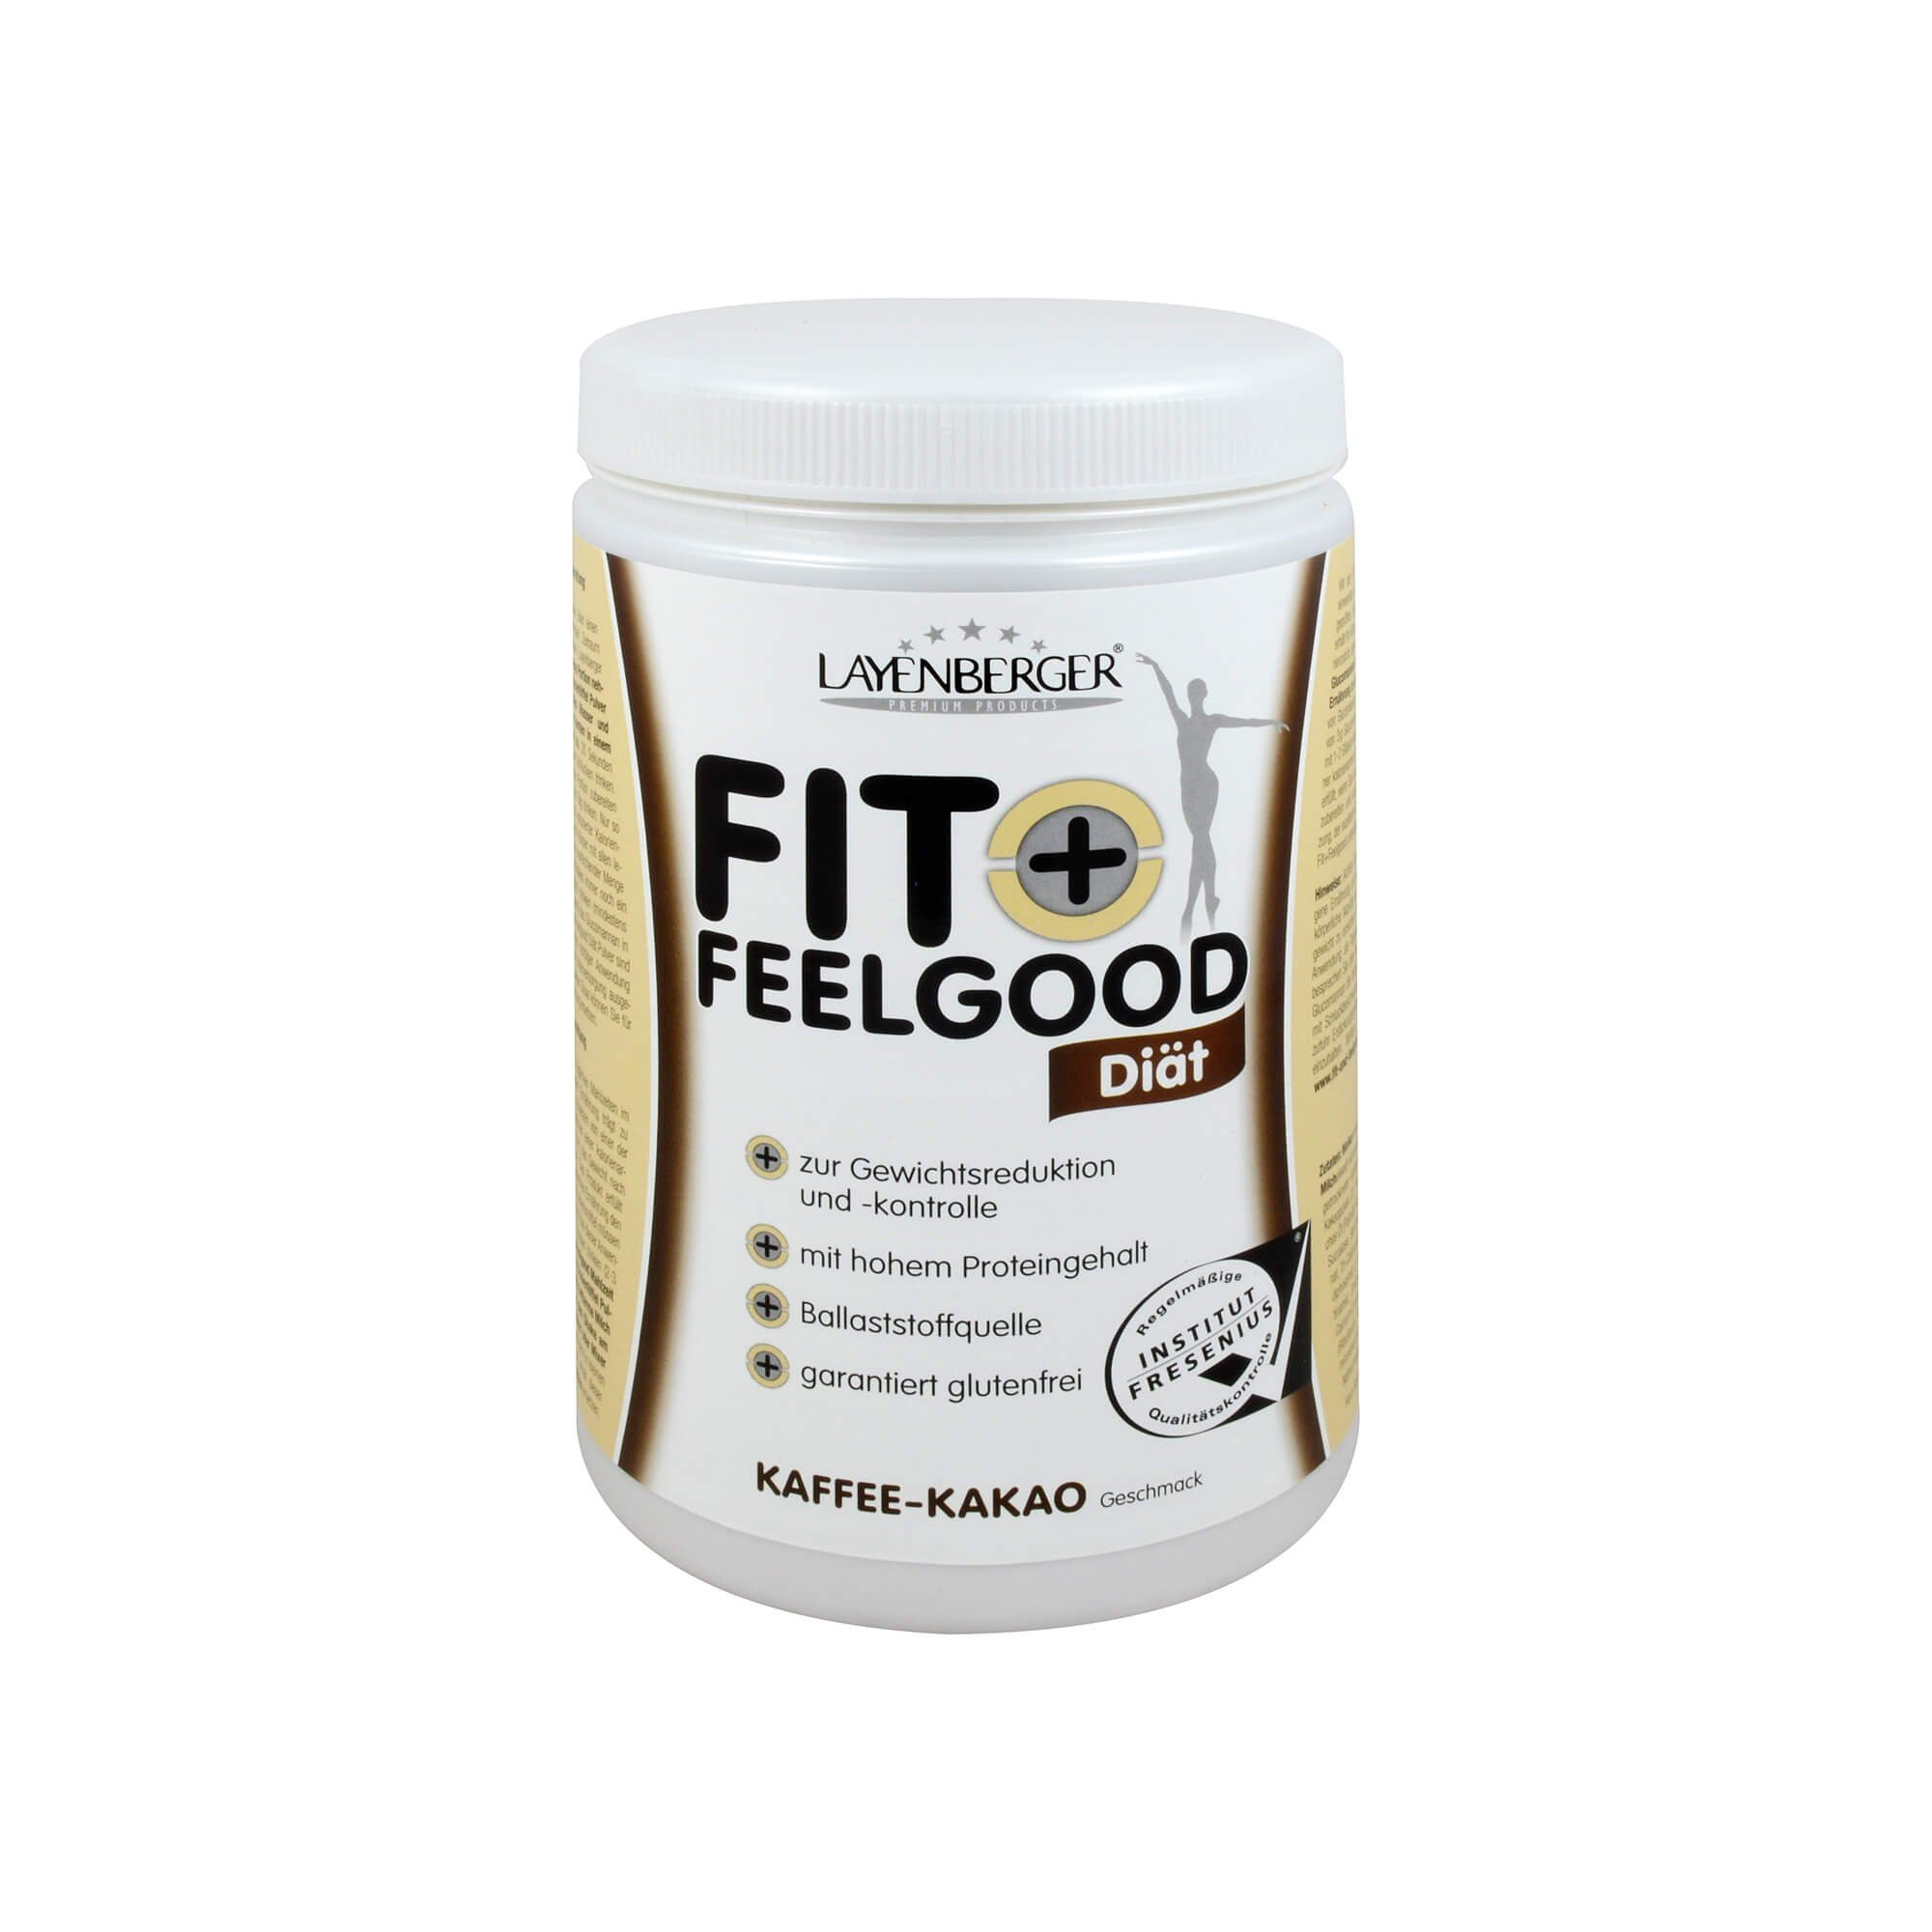 Layenberger Fit+Feelgood Schlank-Diät Schoko-Kaffee , 430 g